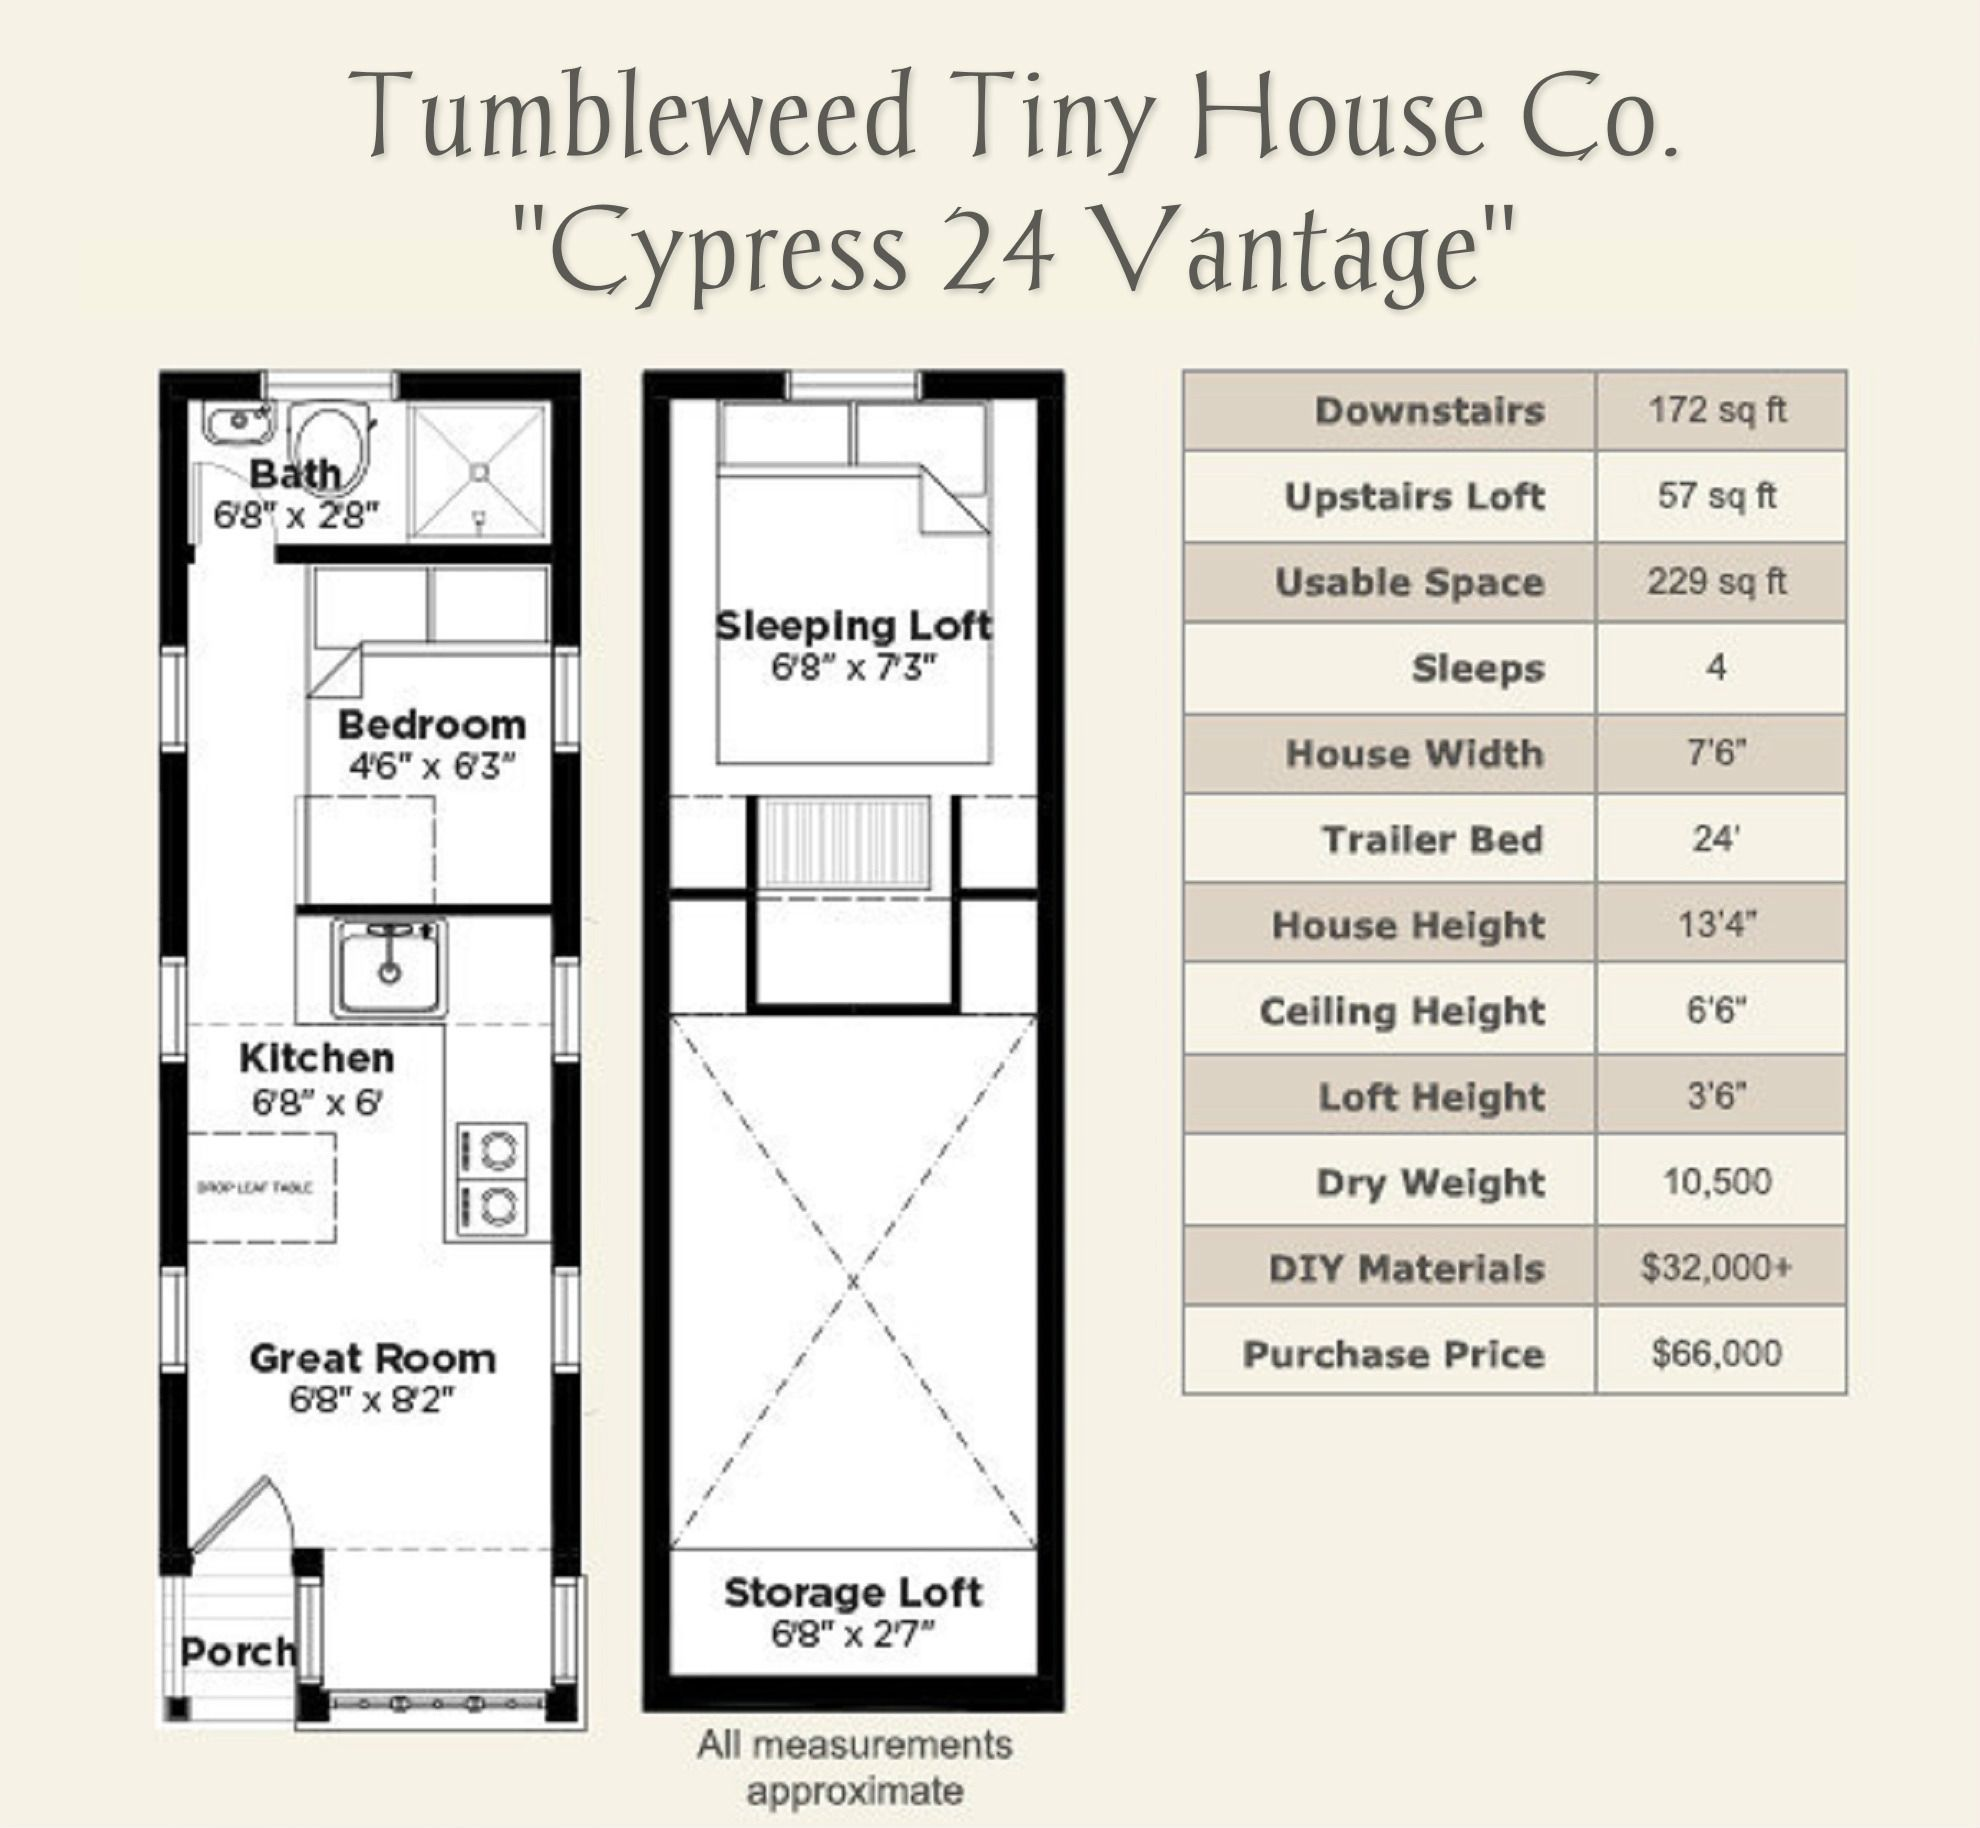 cypress 24 vantage by tumbleweed tiny house